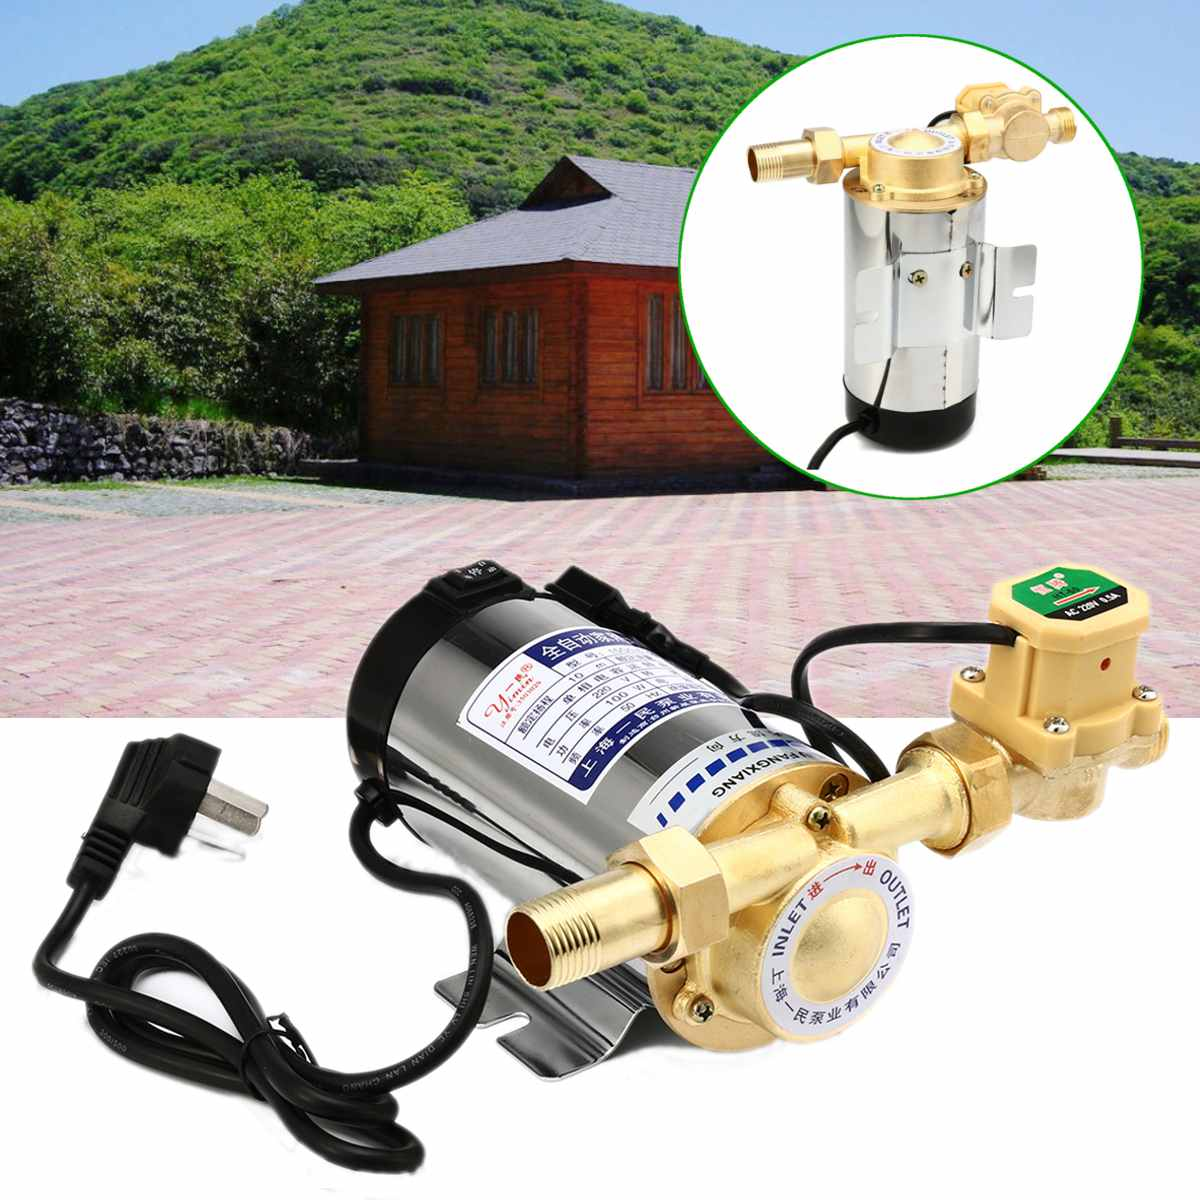 100W/150W Pipeline Pump Automatic Circulating Water Booster Pump 220V/50HZ Electric Pressure Pump Boosting Pump For Water Heater